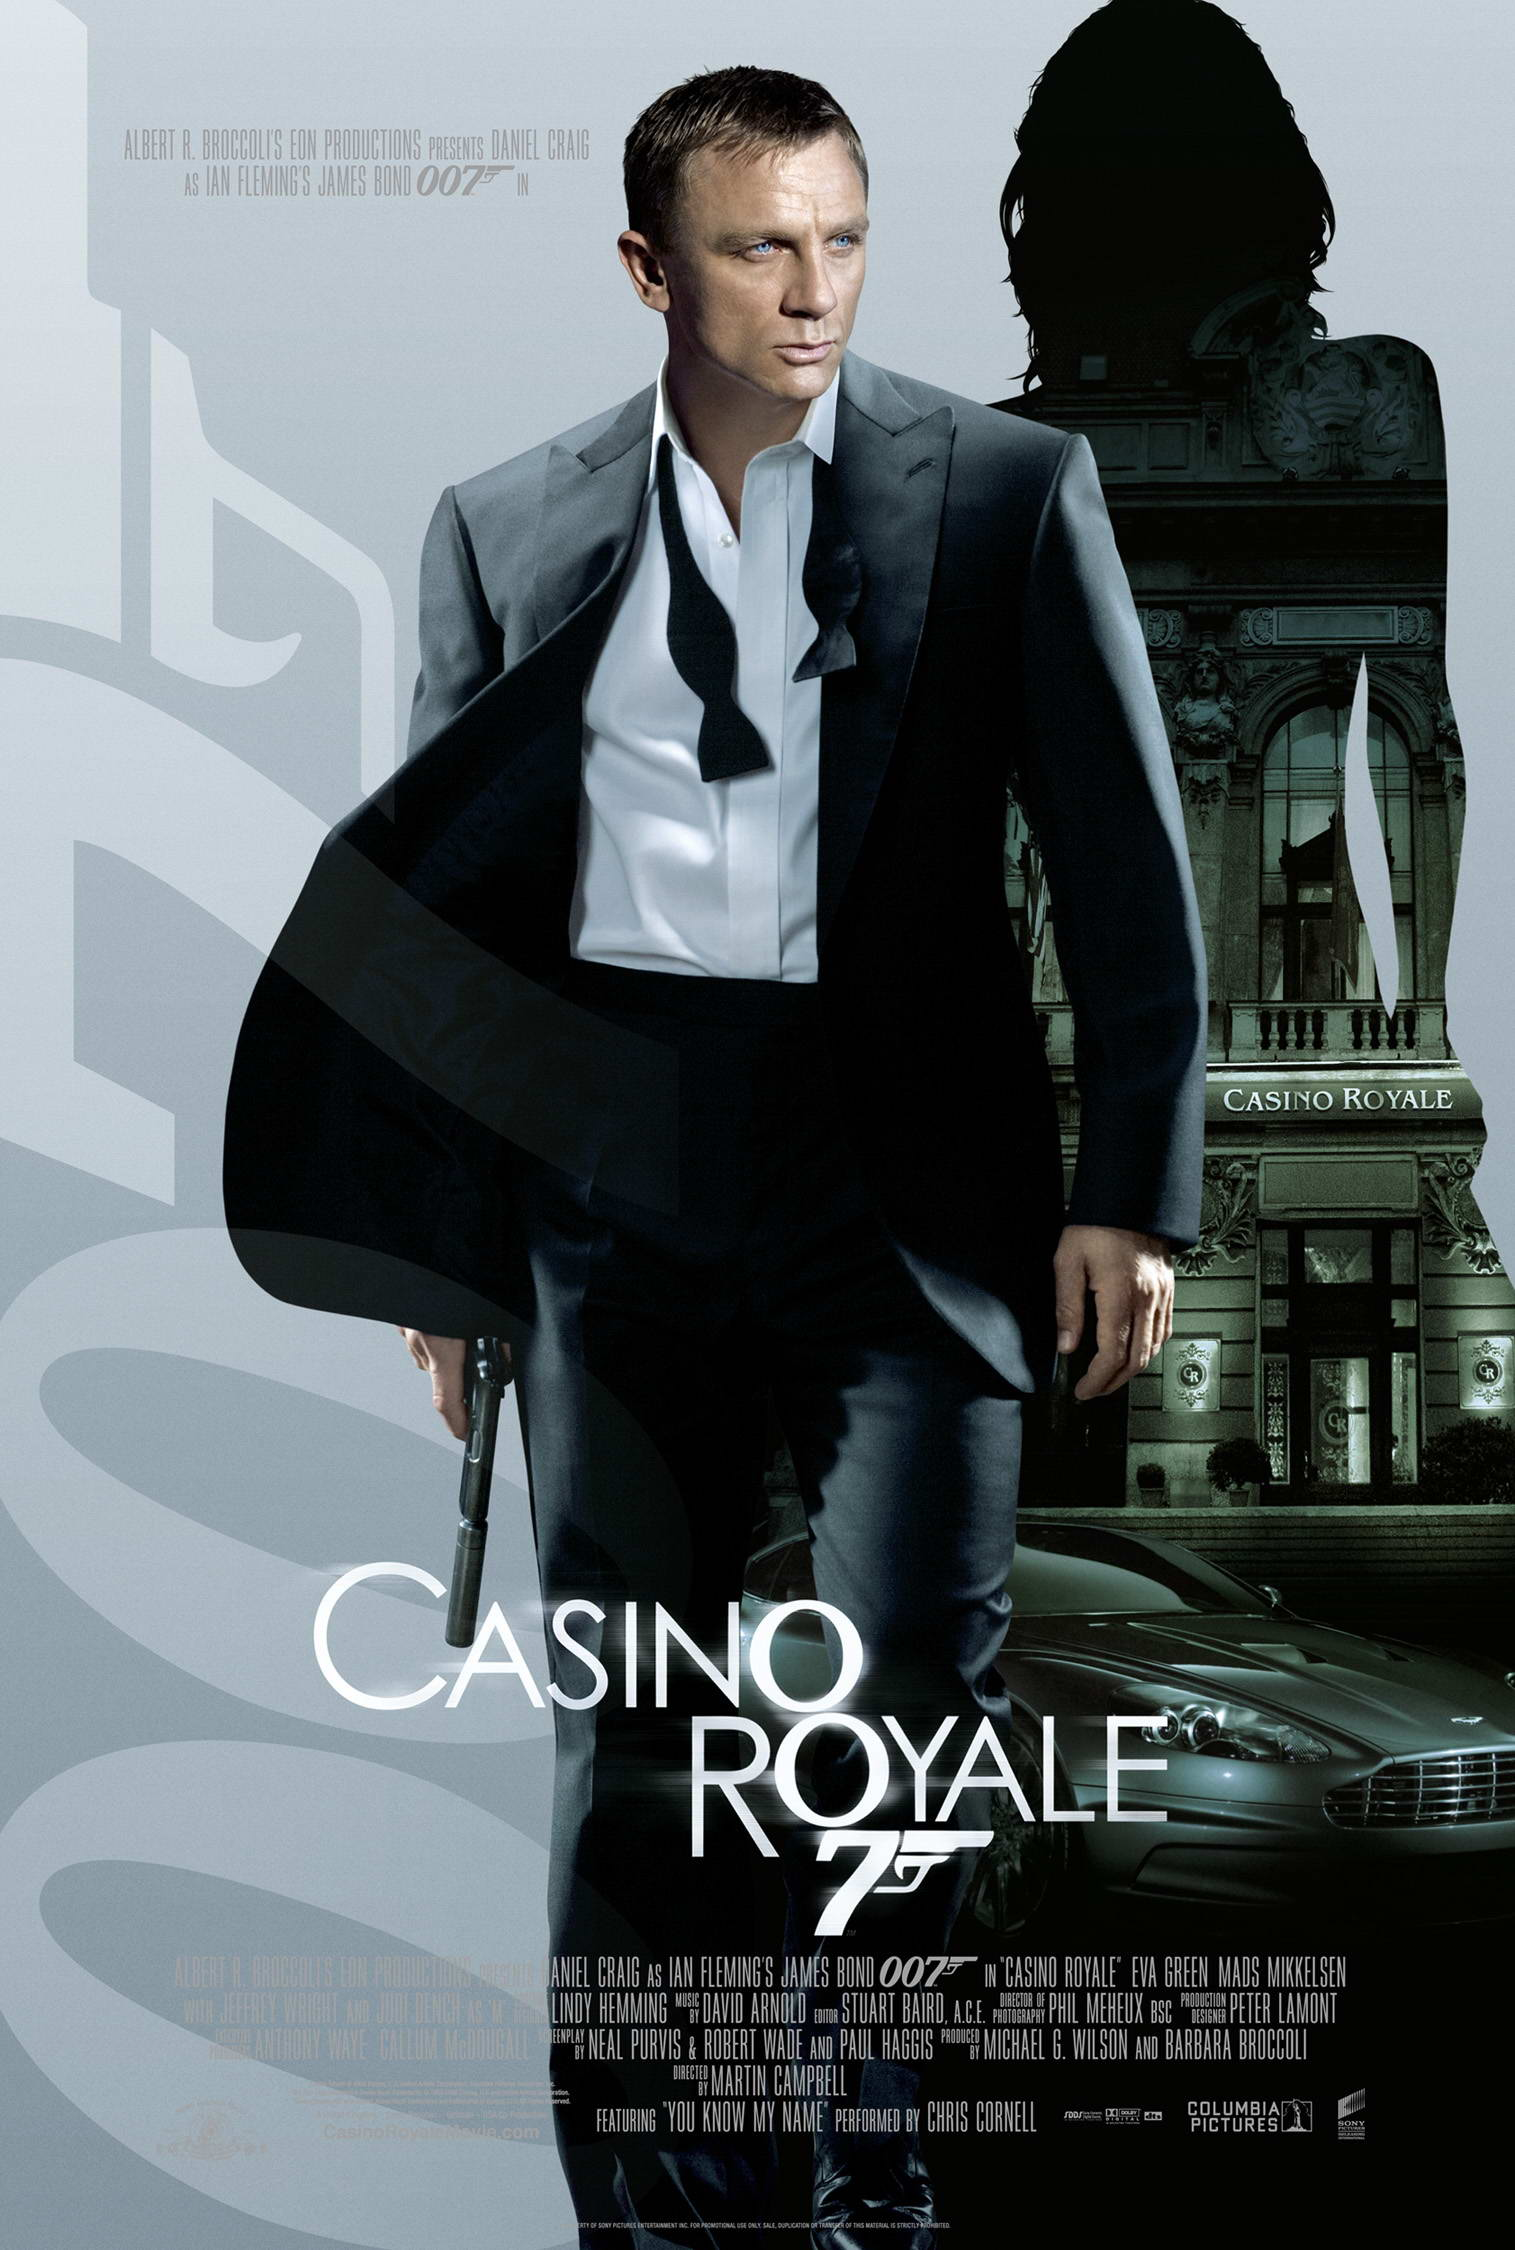 Casino royal music download hotel and casino in downtown las vegas